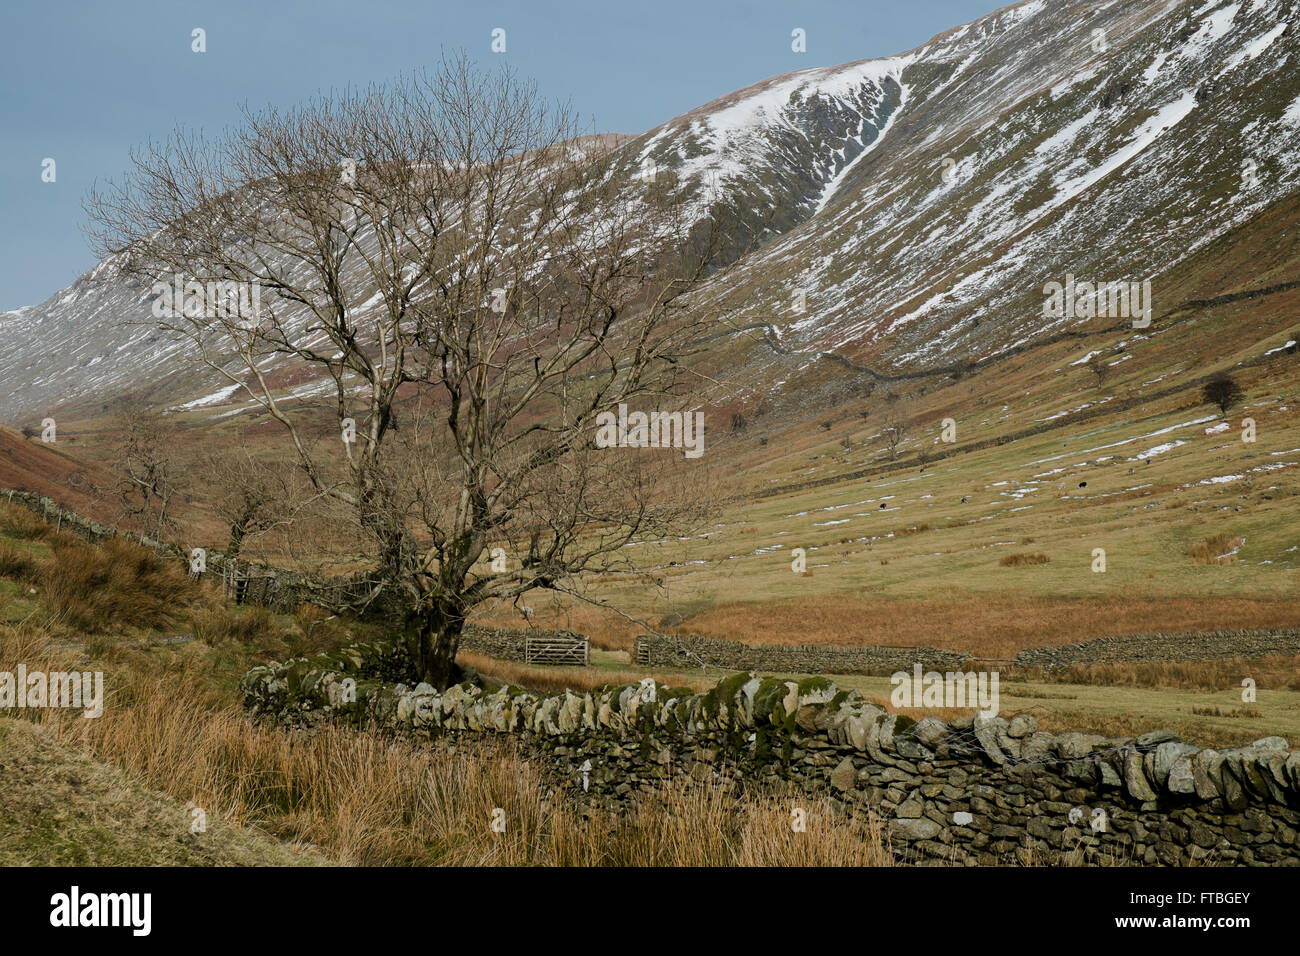 A winter view along Troutbeck valley in the Lake District, Cumbria, England - Stock Image